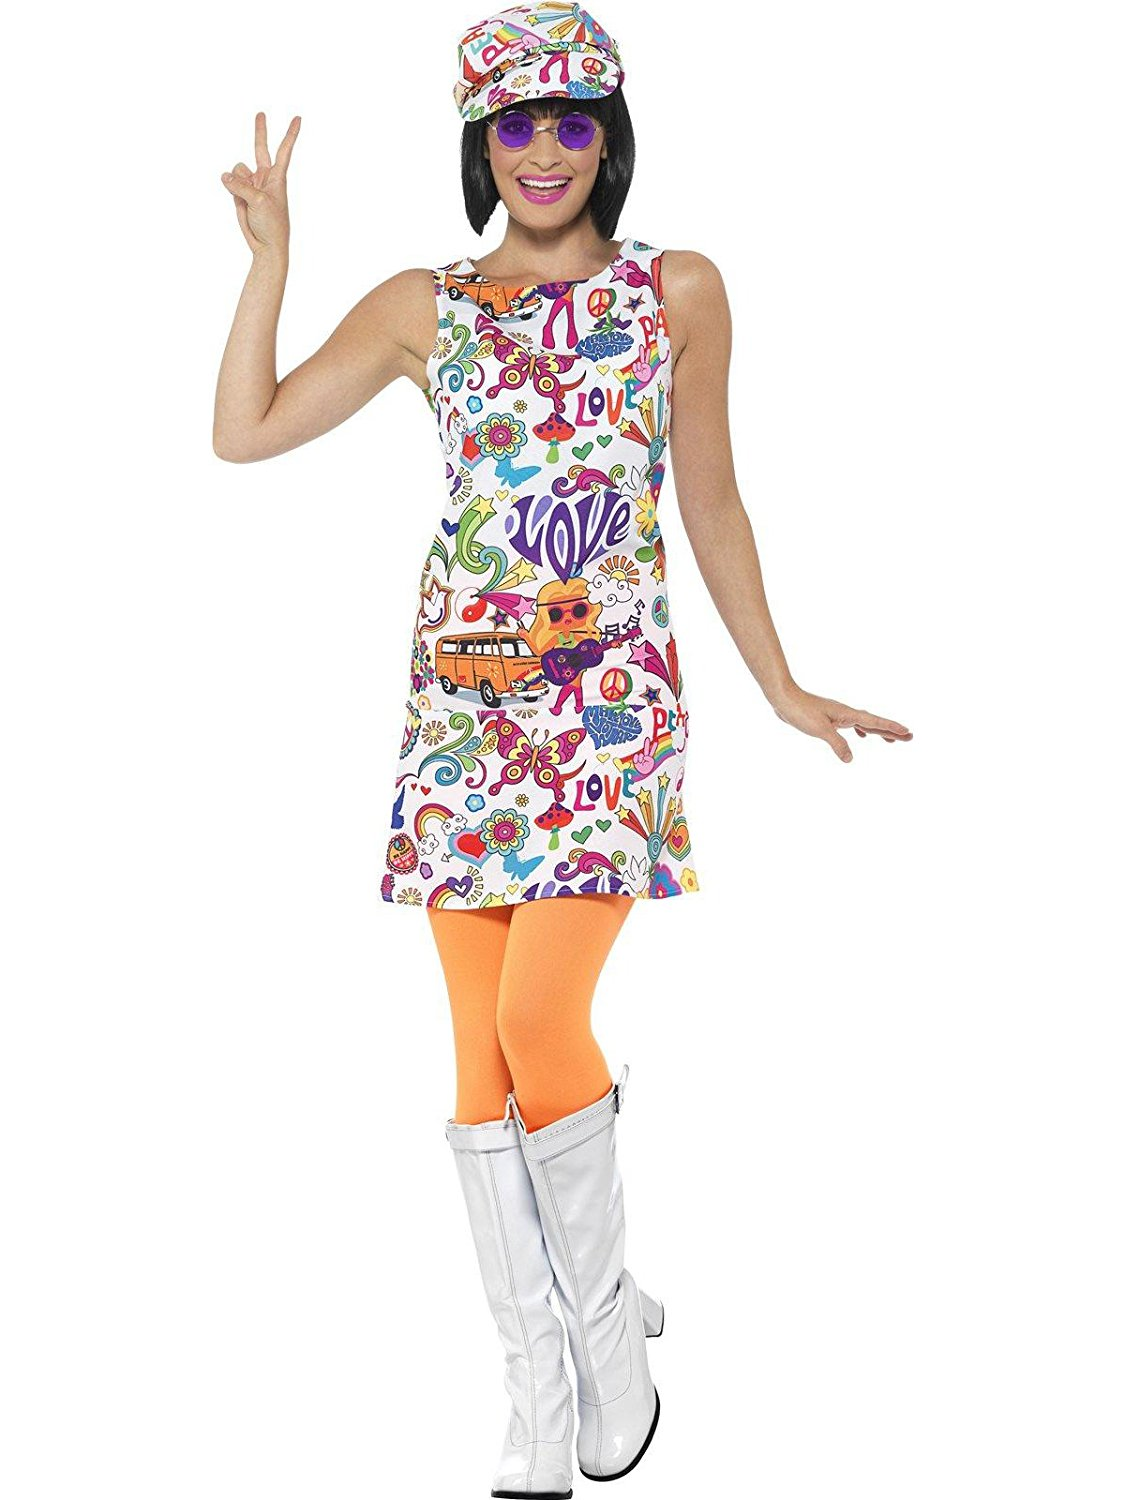 60's Groovy chick costume. Smiffys 44911